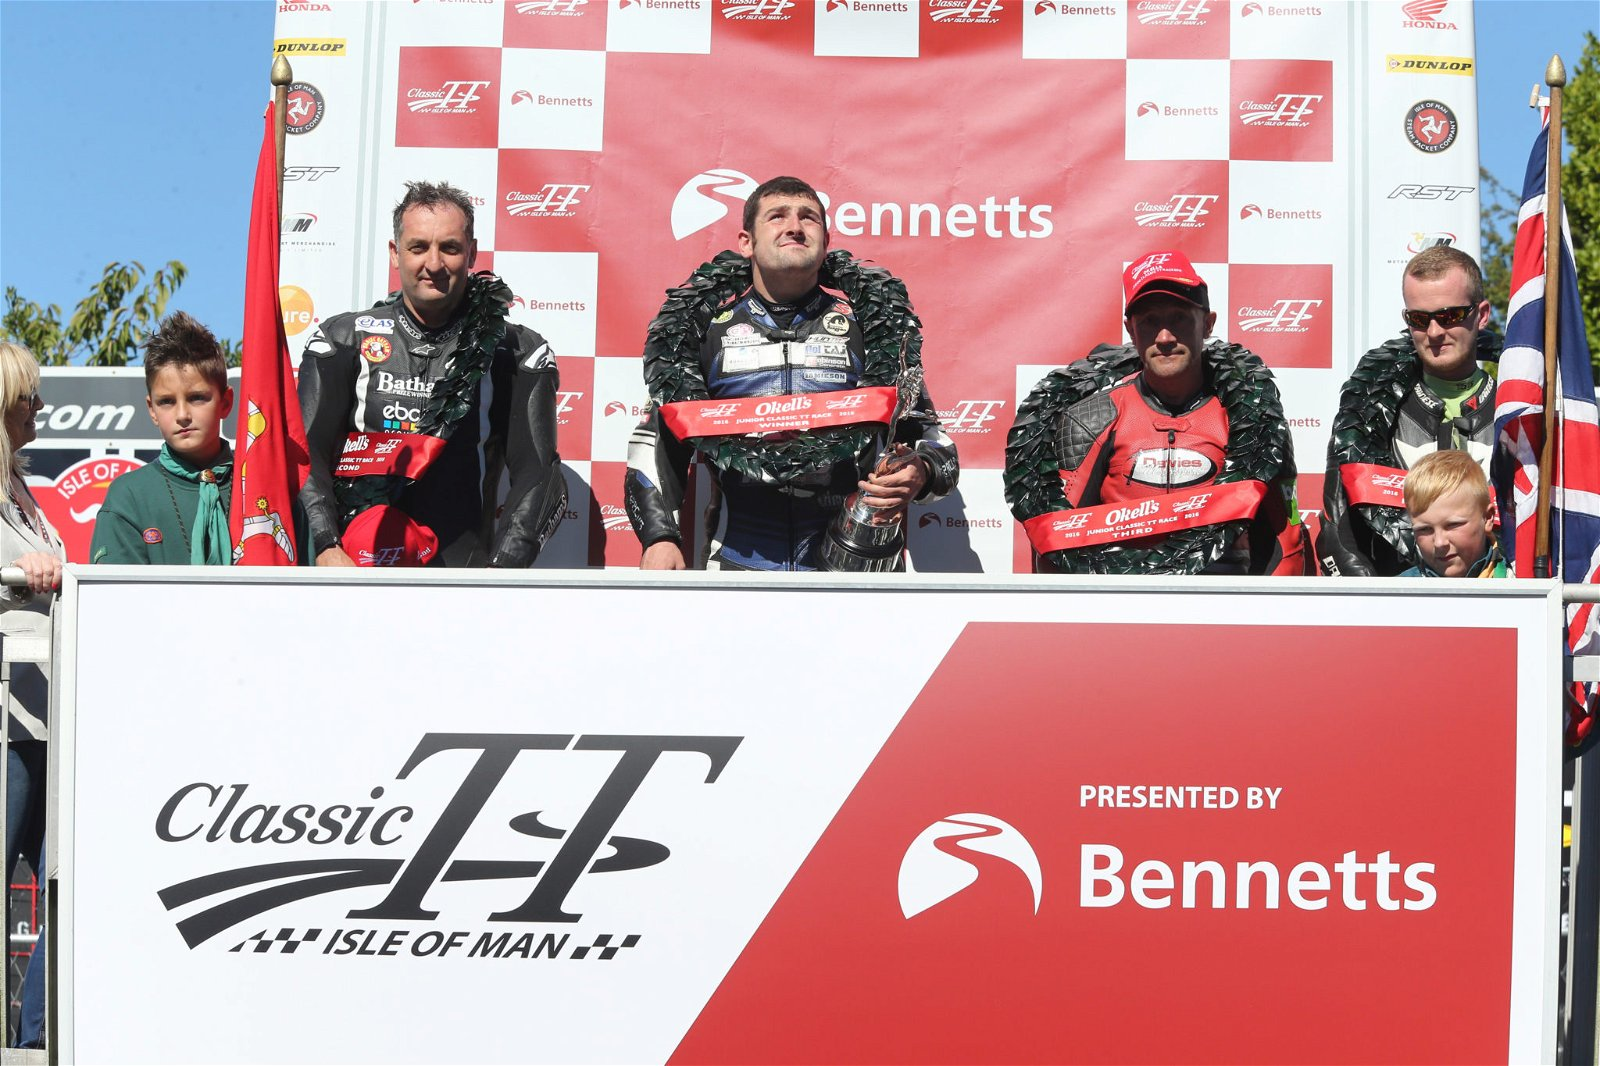 PACEMAKER, BELFAST, 29/8/2016: Michael Dunlop (Black Eagle MV Agusta) celebrates winning the 350cc race at the Classic TT today with runner up Michael Rutter and third placed Alan Oversby. PICTURE BY STEPHEN DAVISON